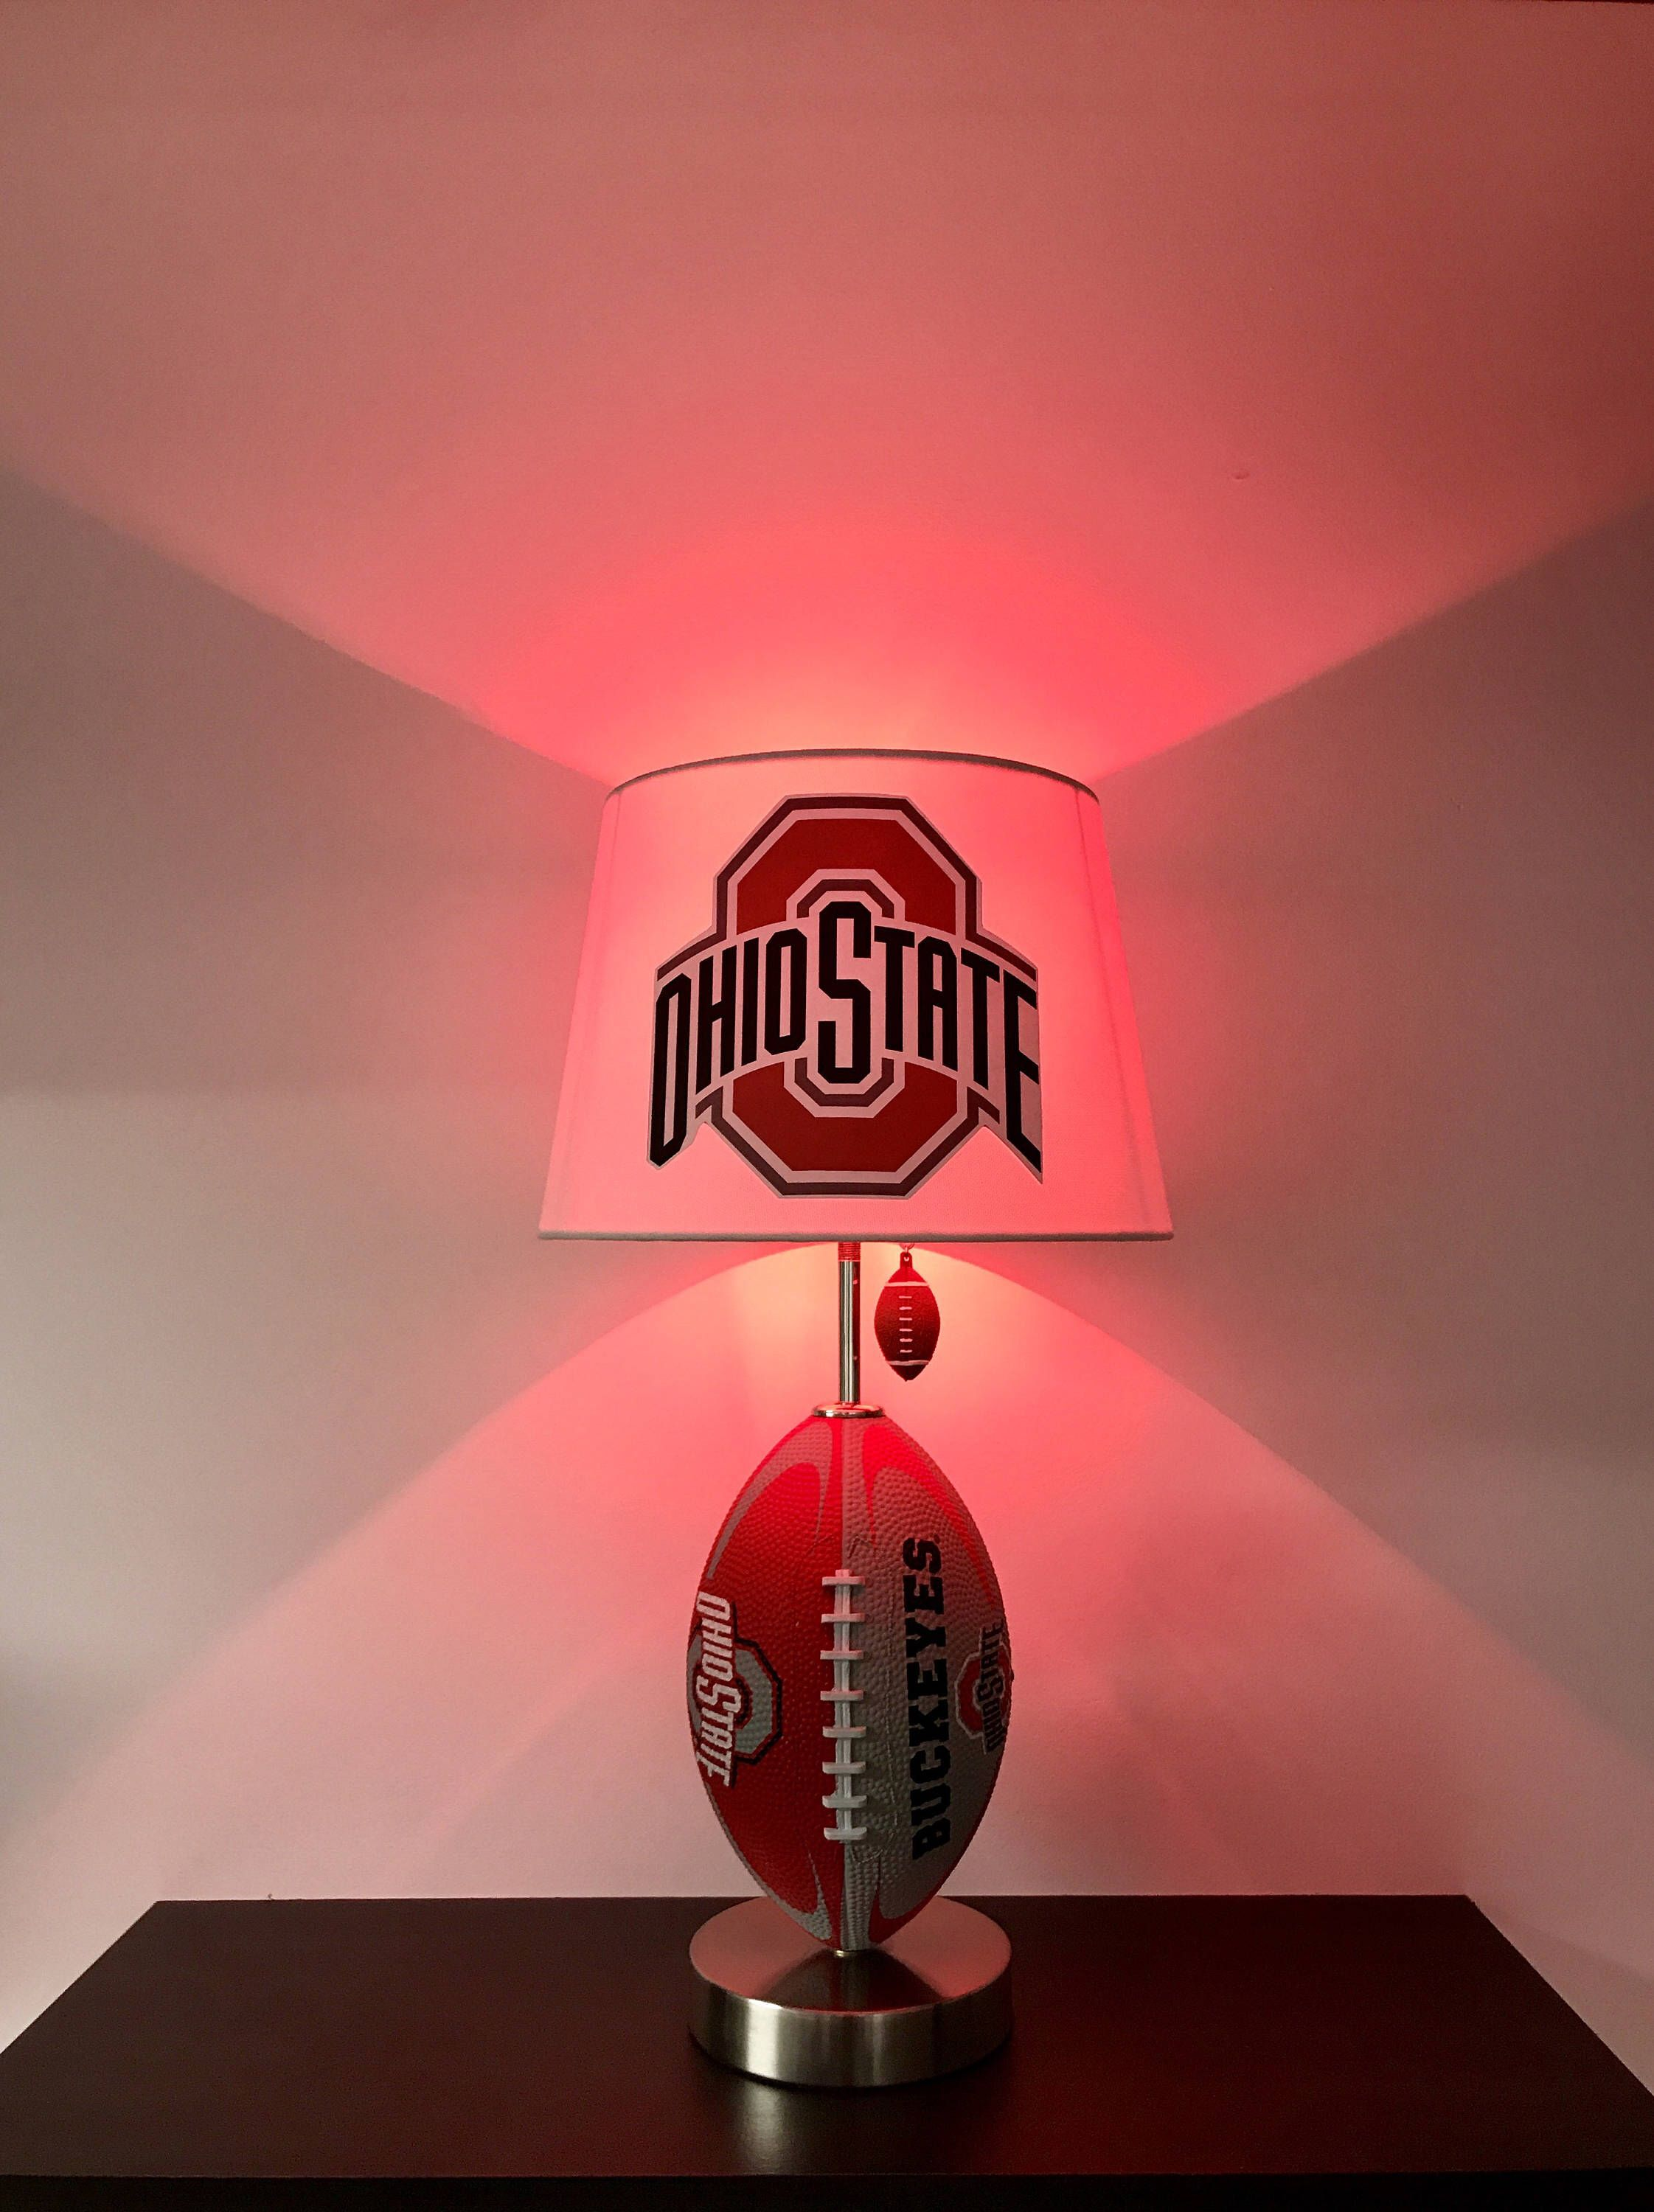 Ohio state buckeyes lamp ncaa man cave football lamp football ohio state buckeyes lamp ncaa man cave football lamp football light buckeyes light college football ohio state college lamps college lights mozeypictures Images